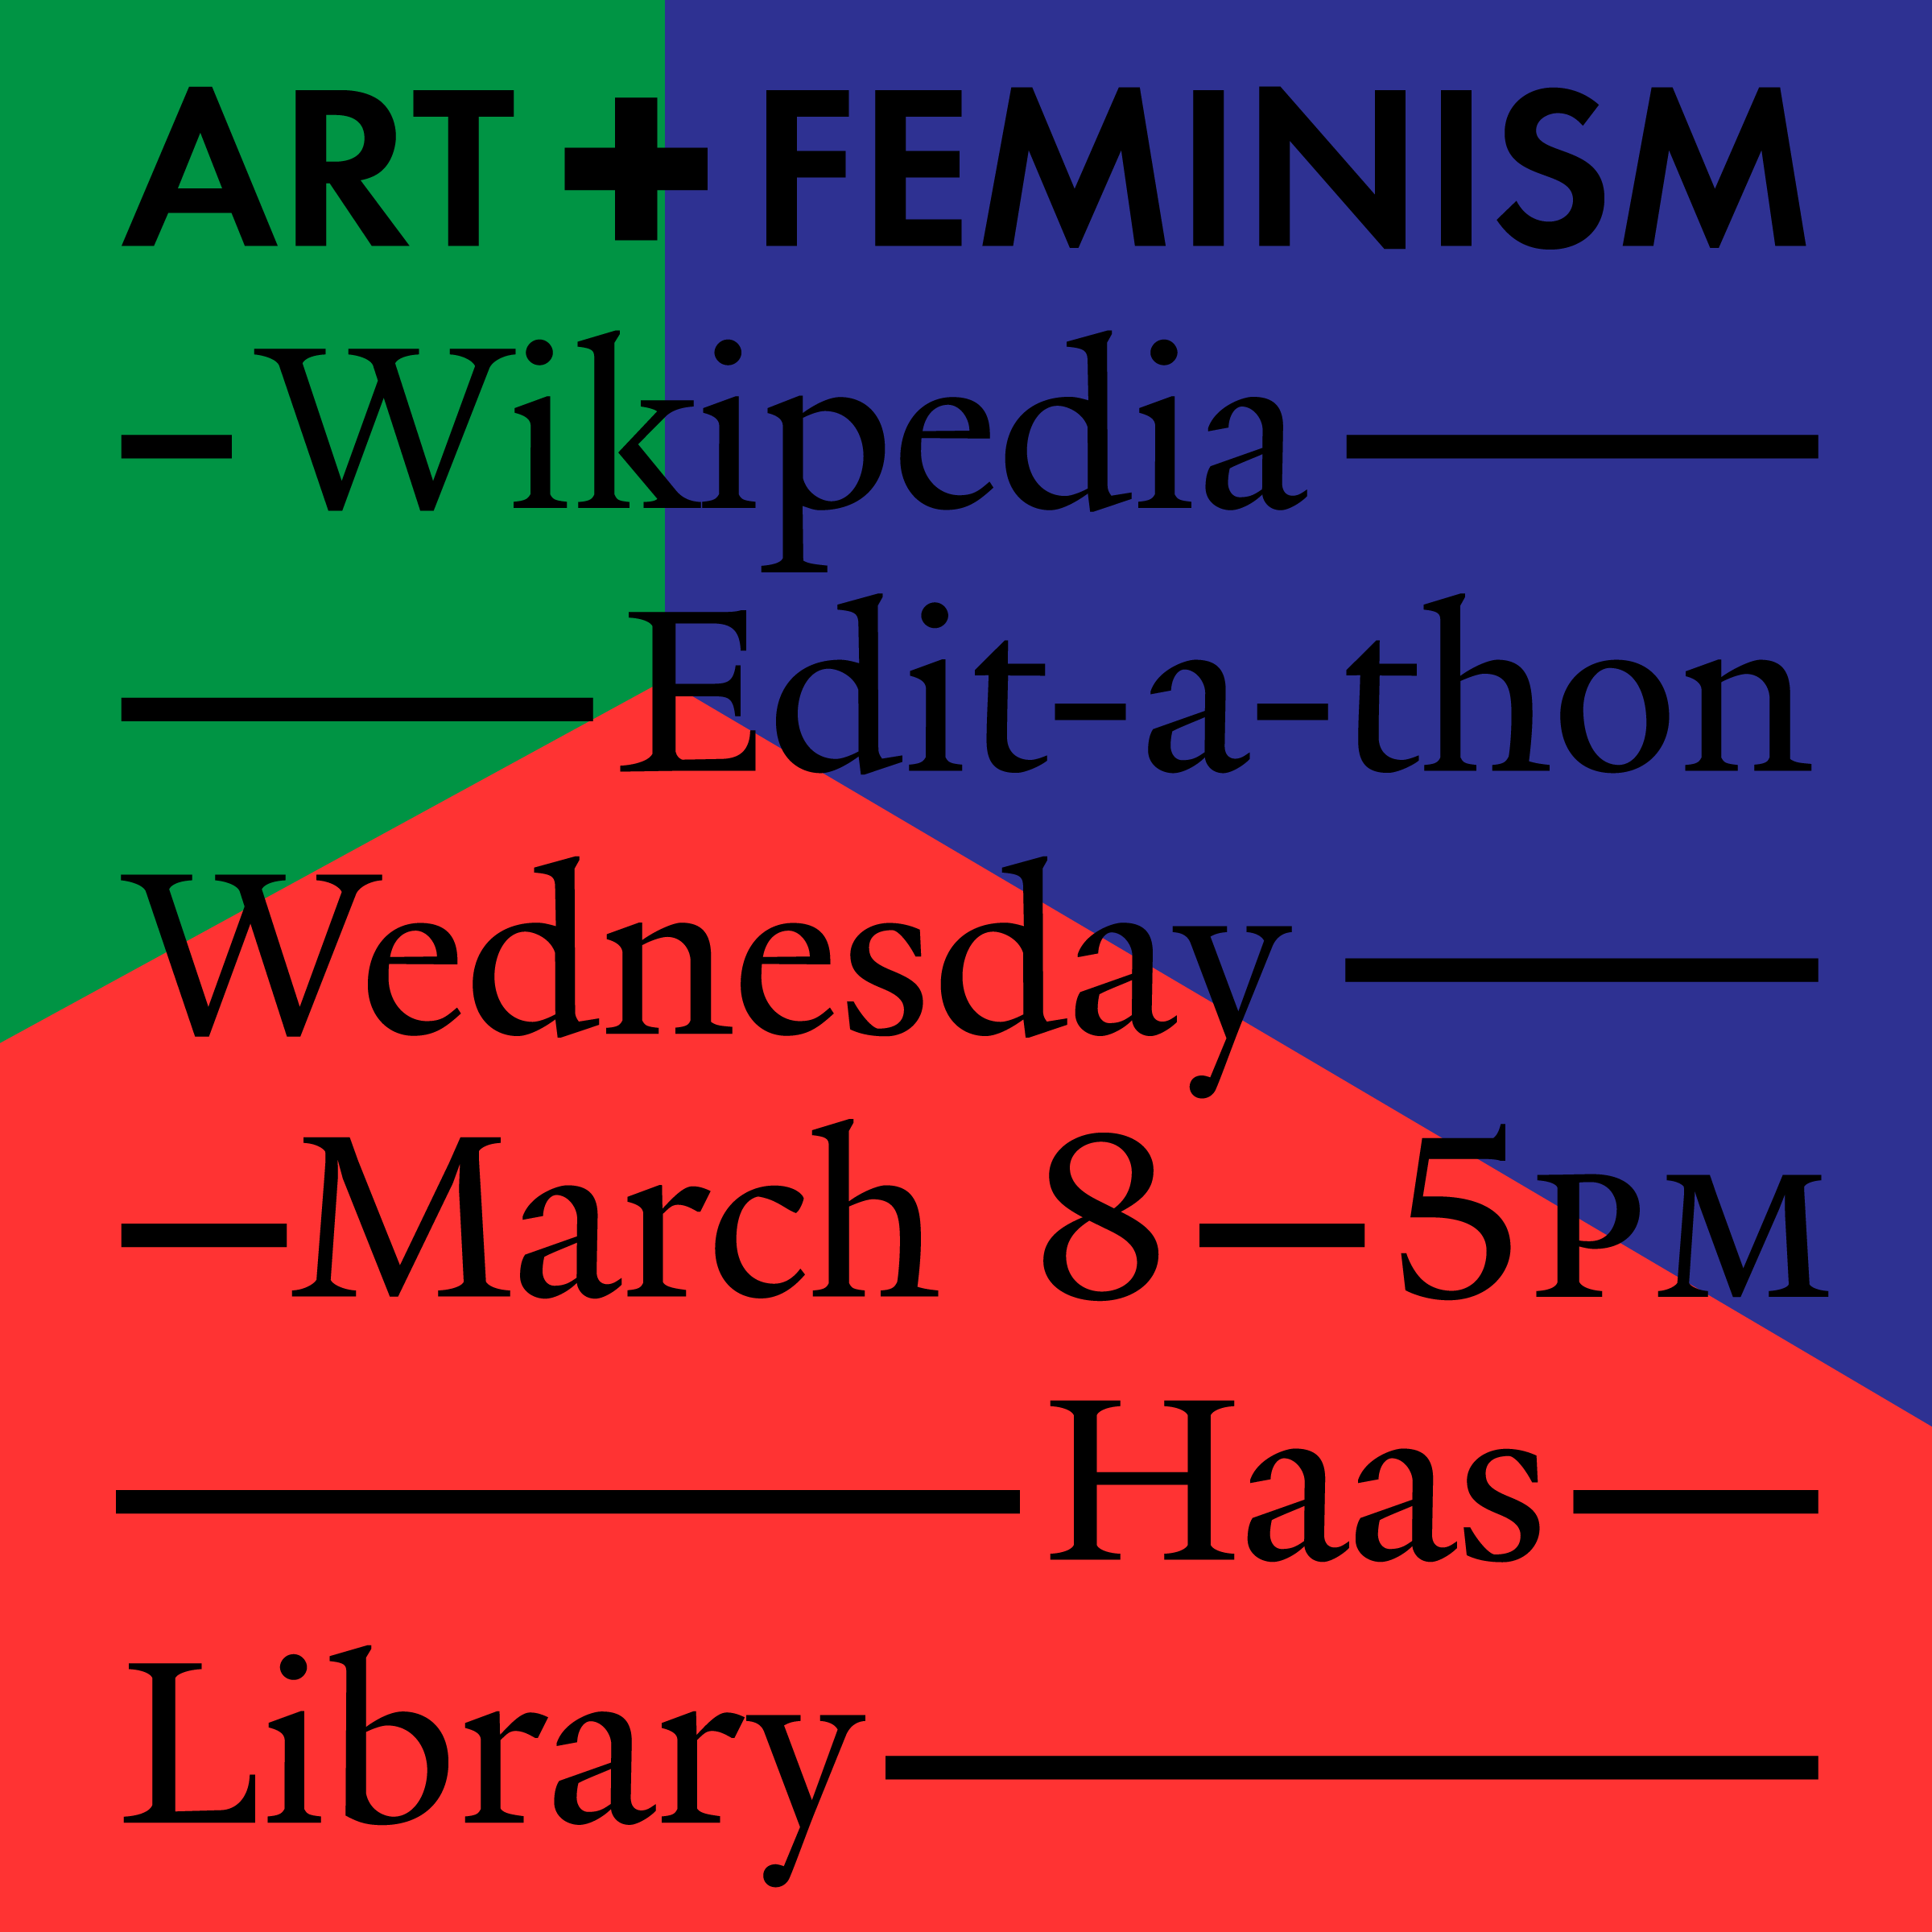 Art+Feminism Wikipedia Edit-a-thon Wednesday March 8, 5pm Haas Library